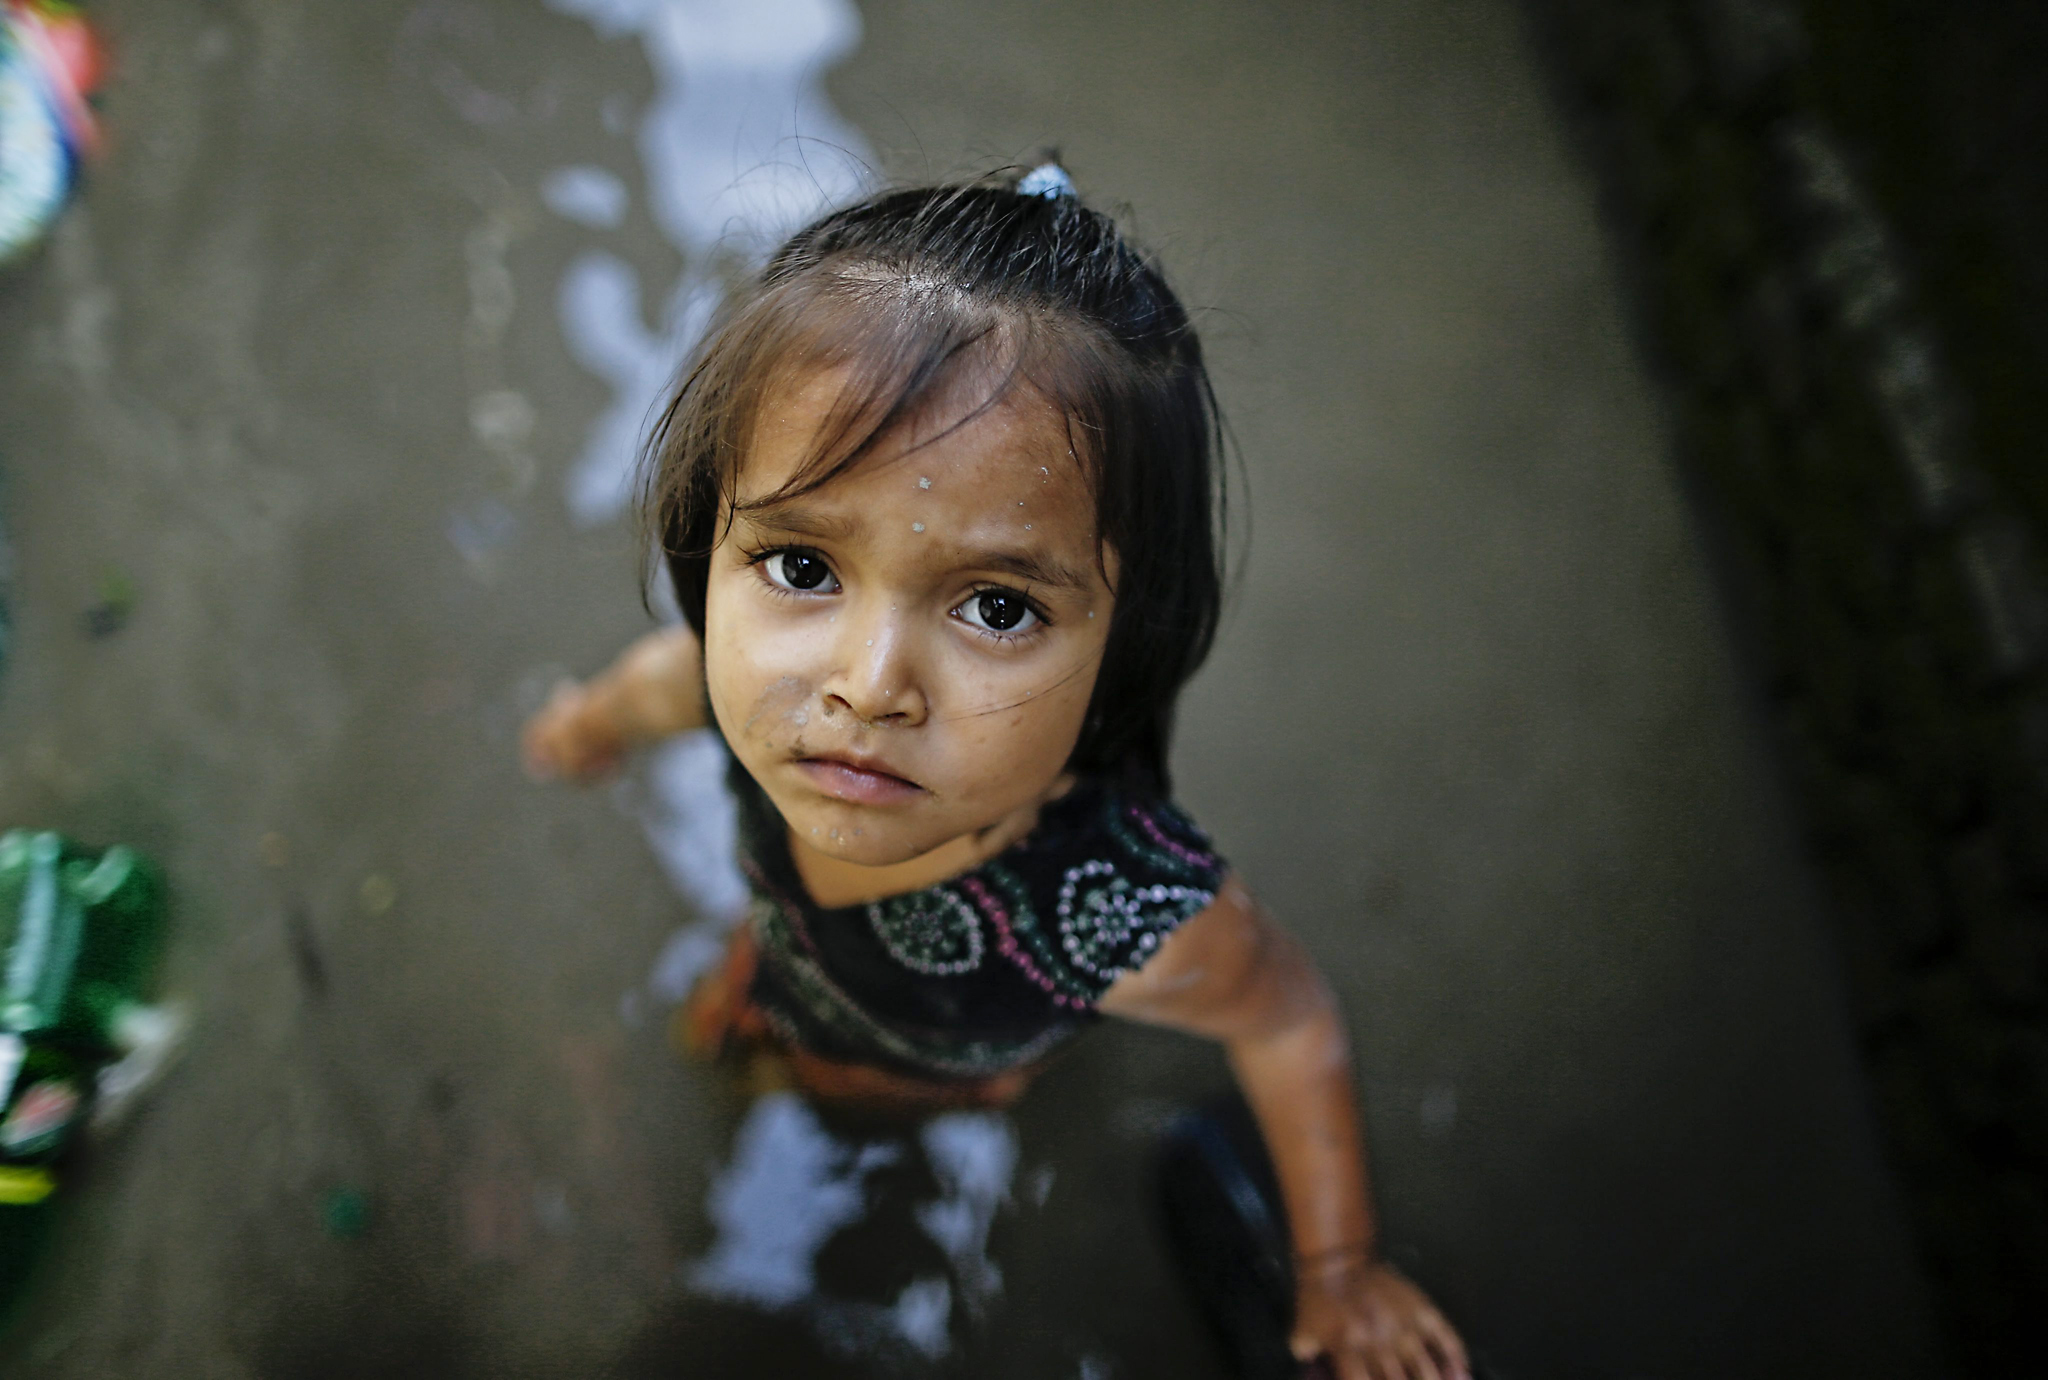 epa04887005 A girl stands amid floodwaters at her flooded home in a squatters' area after heavy rains in Kathmandu, Nepal, 17 August 2015. Hundreds of houses at a Bagmati squatters' settlement became waterlogged after the Bagmati River burst its banks.